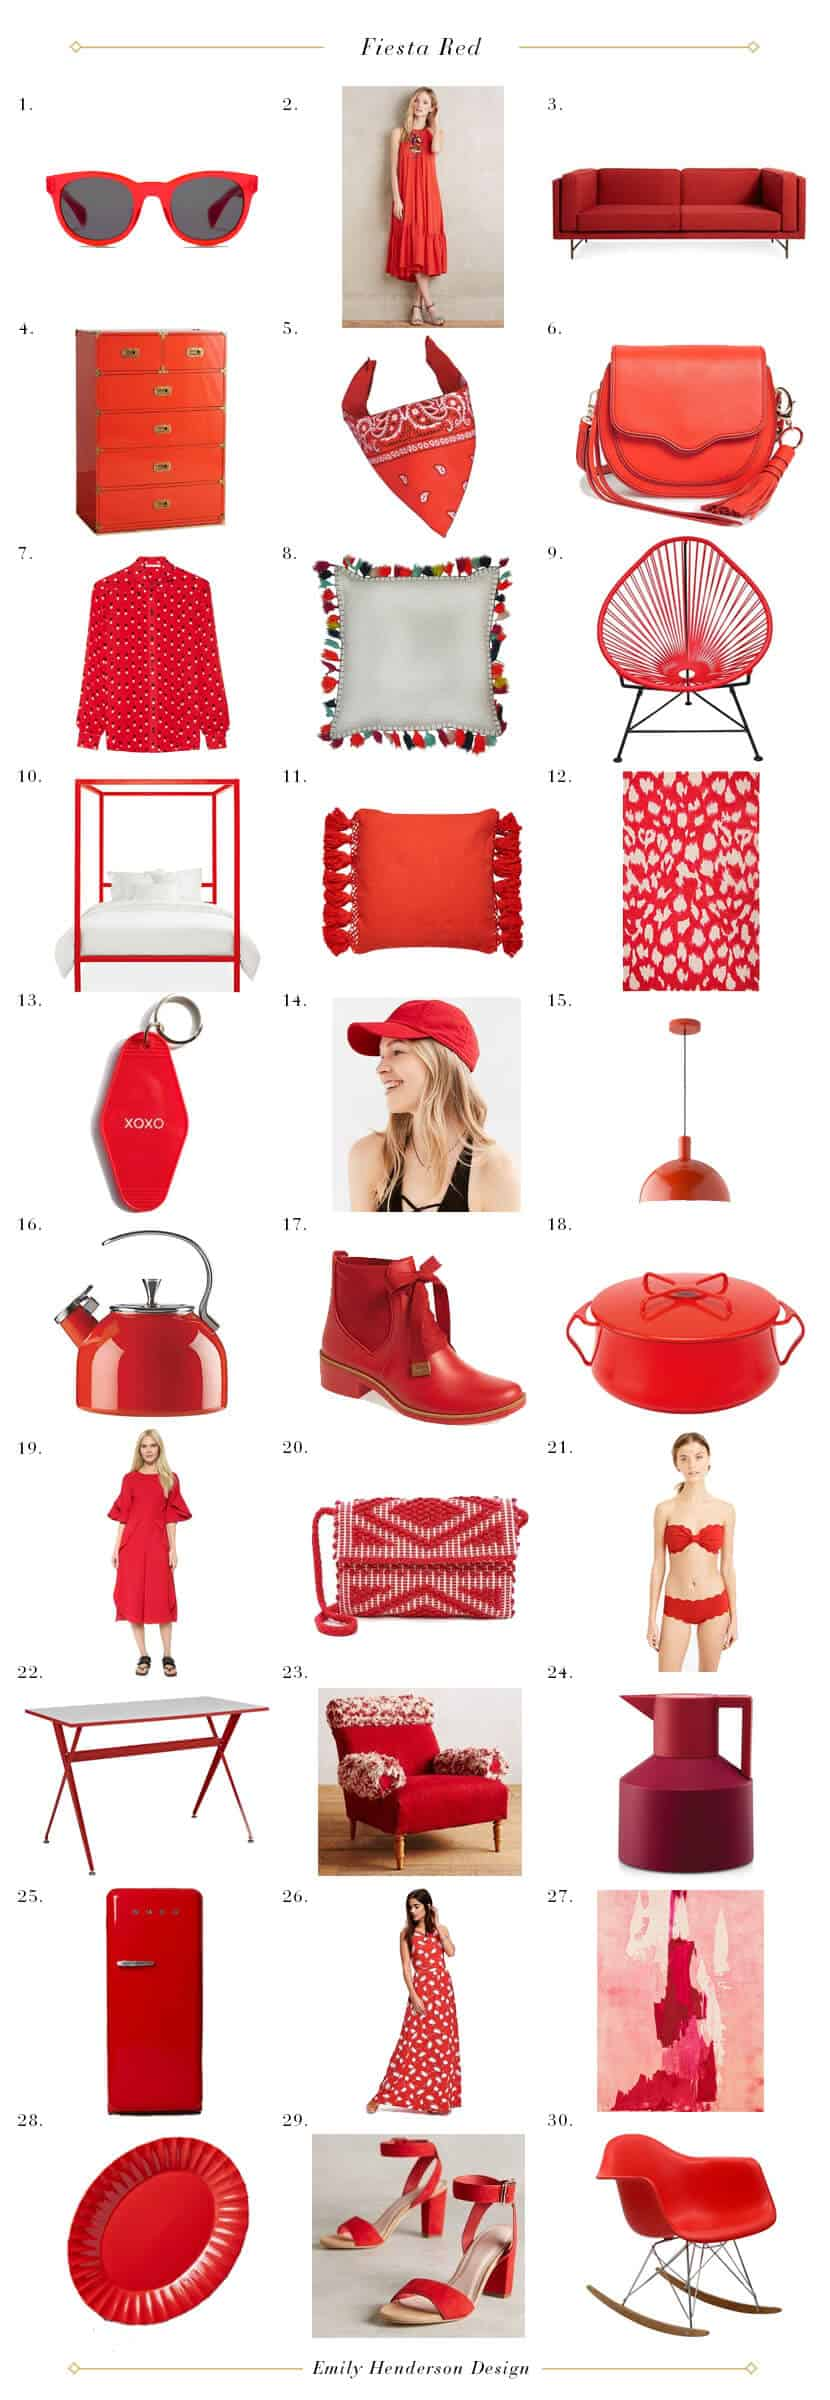 Fiesta Red Color Trends Red Housewares Fashion Accessories grid